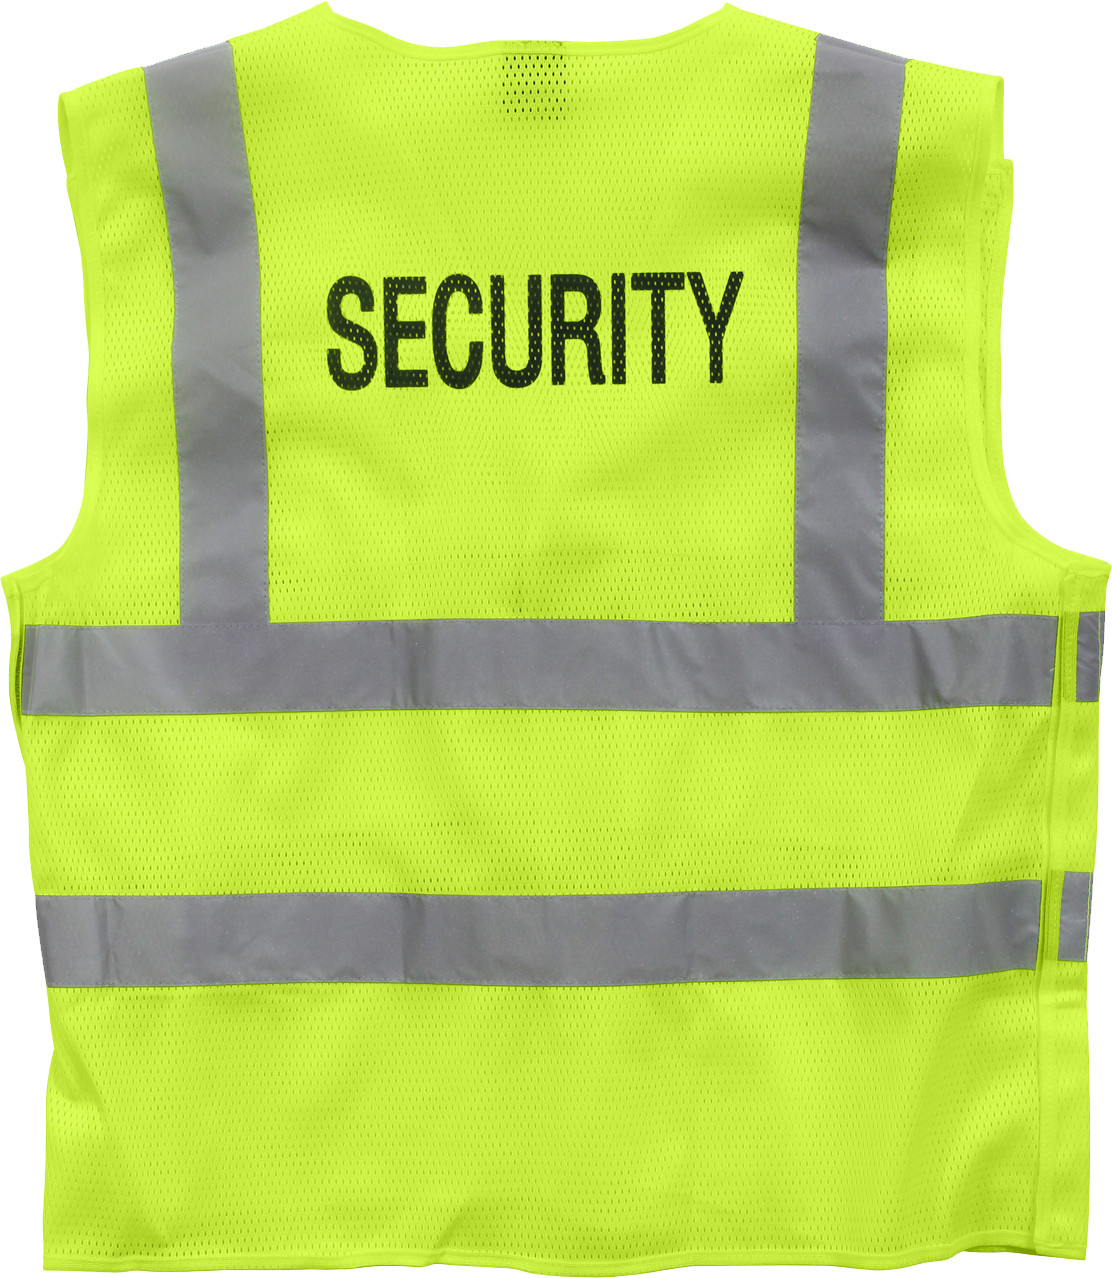 Safety Green Hi-Visibility 5 Point Tactical Breakaway Protective SECURITY  Safety Vest 21d9e8e9da4